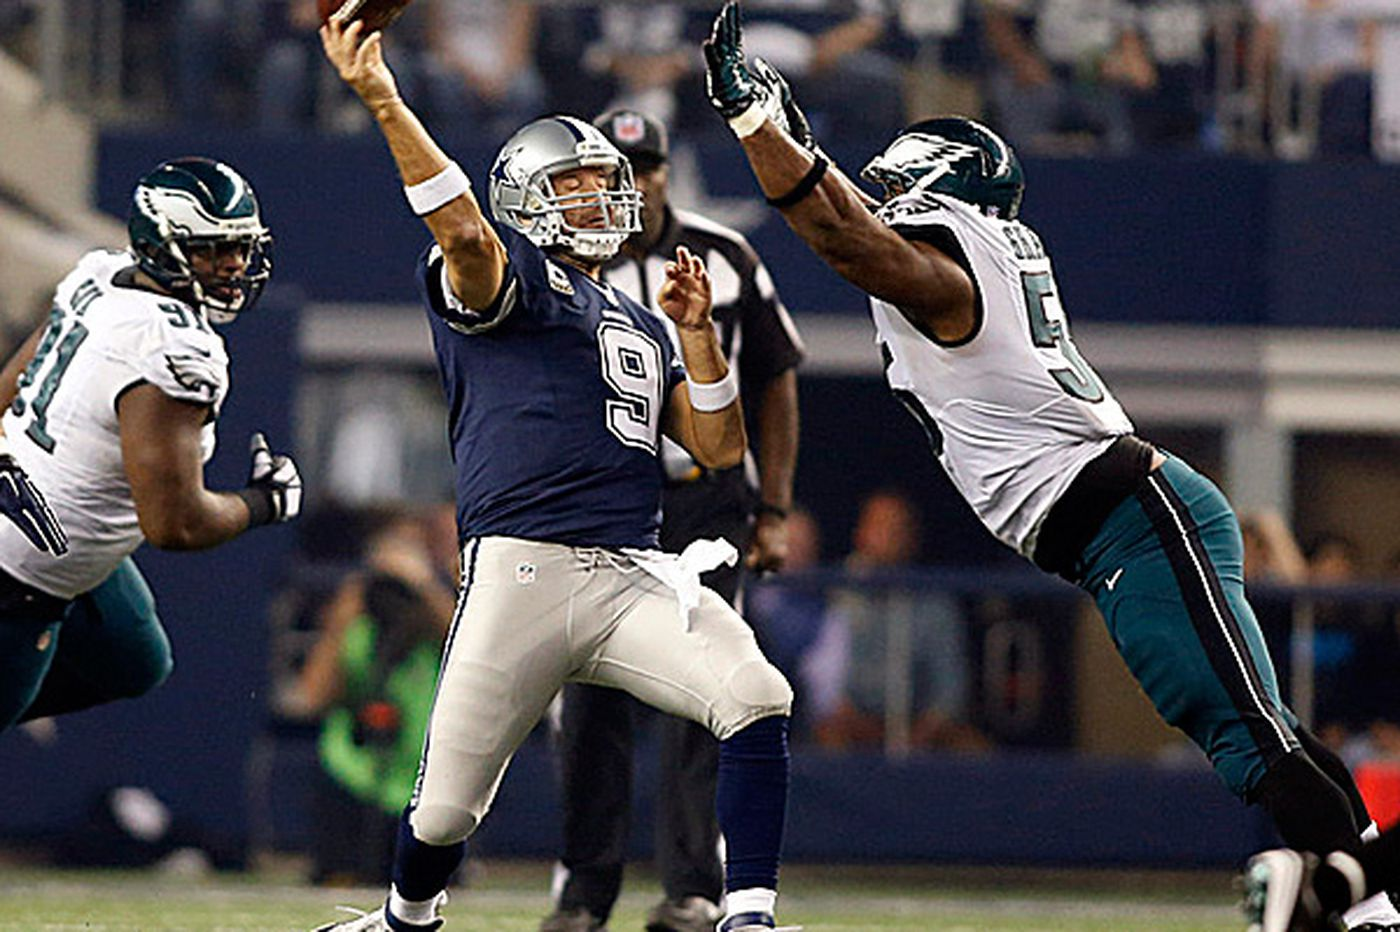 Cowboys passing game could take advantage of Eagles secondary